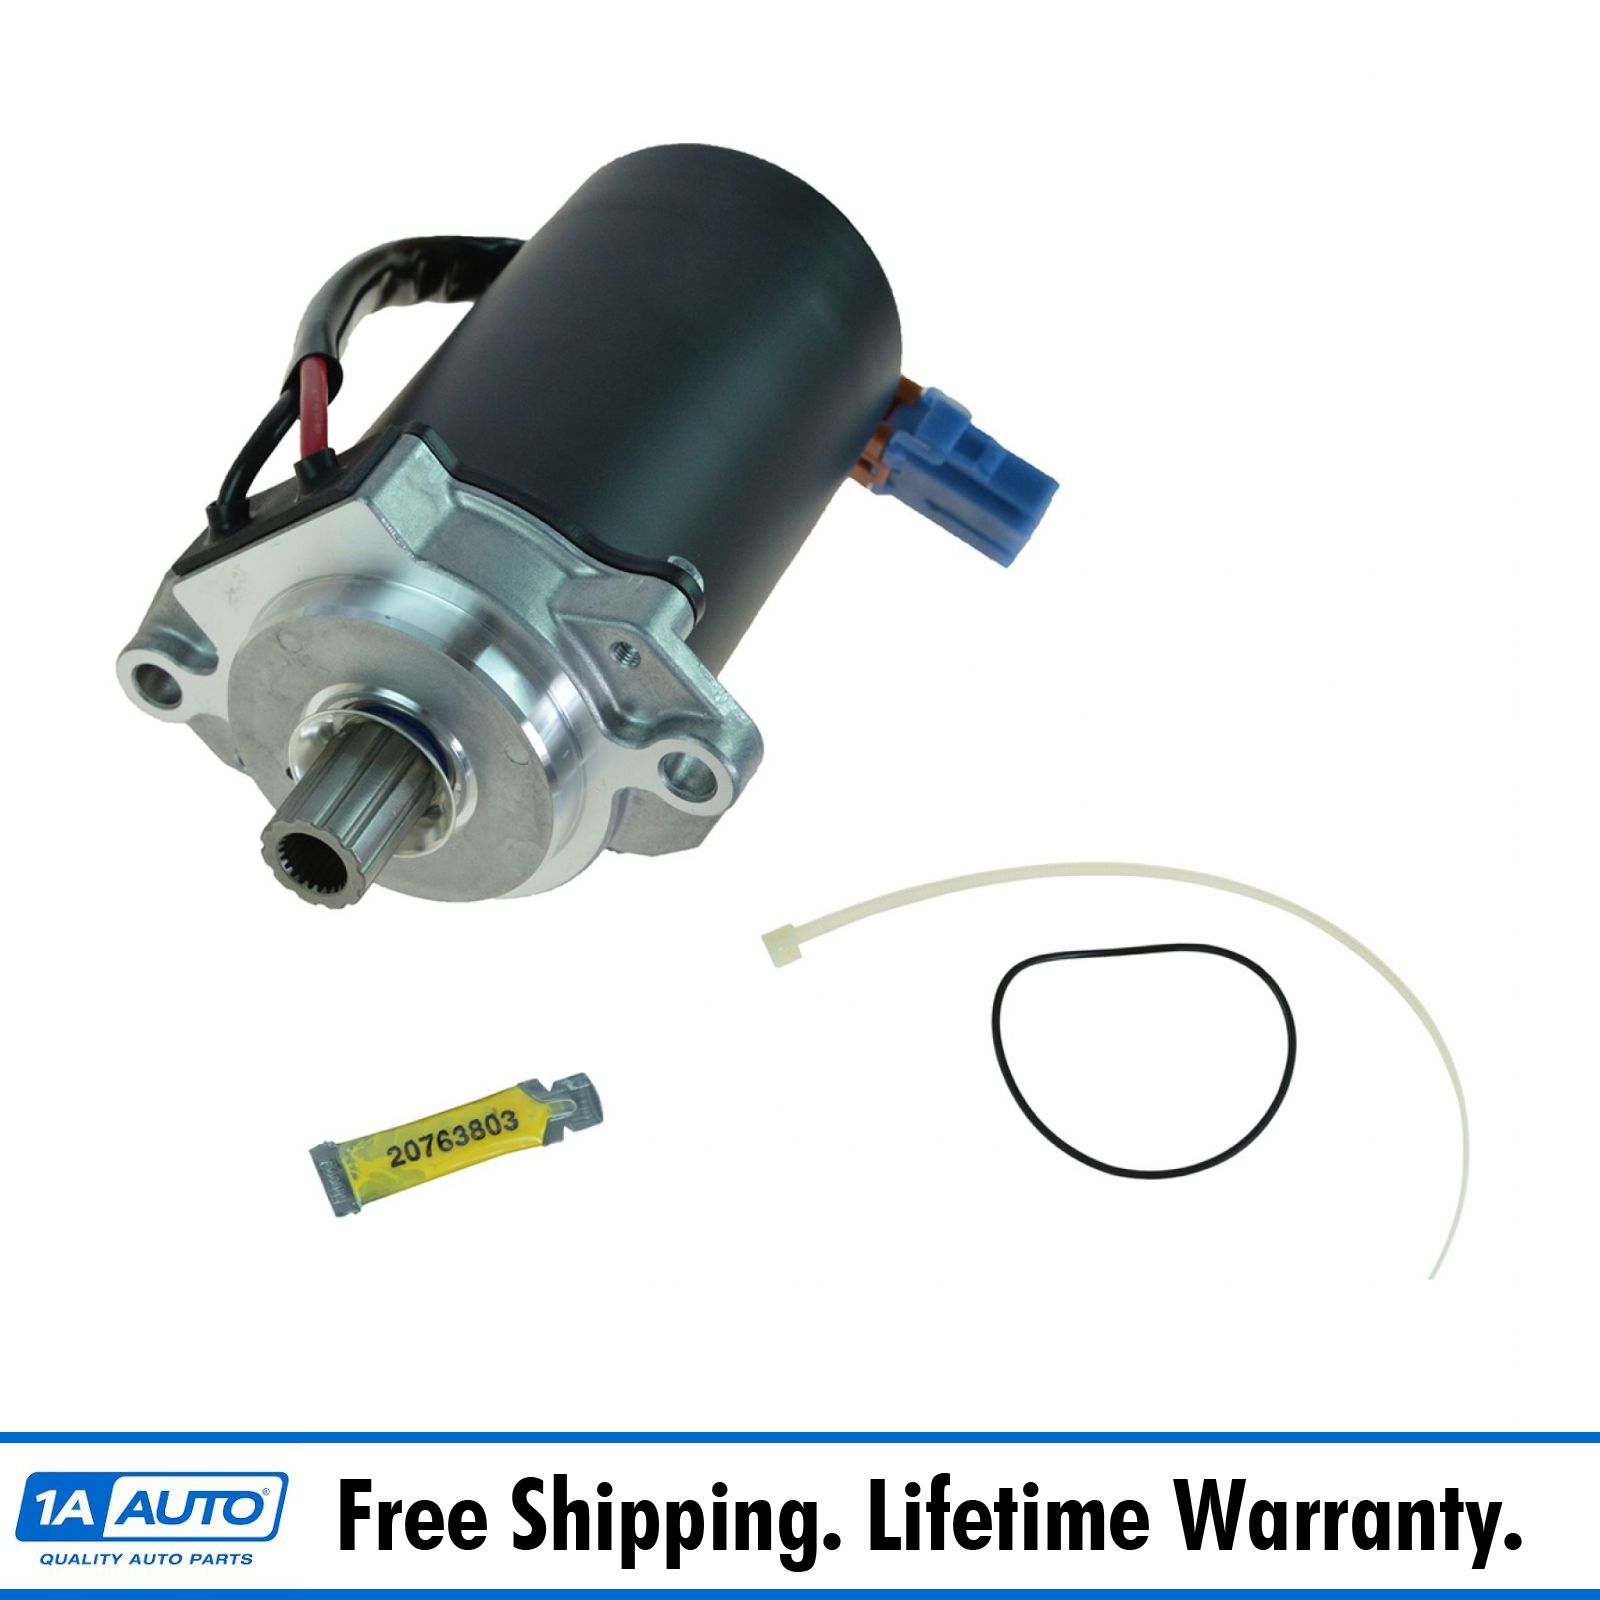 OEM High Quality Starter Motor for Buick Chevrolet Oldsmobile Pontiac